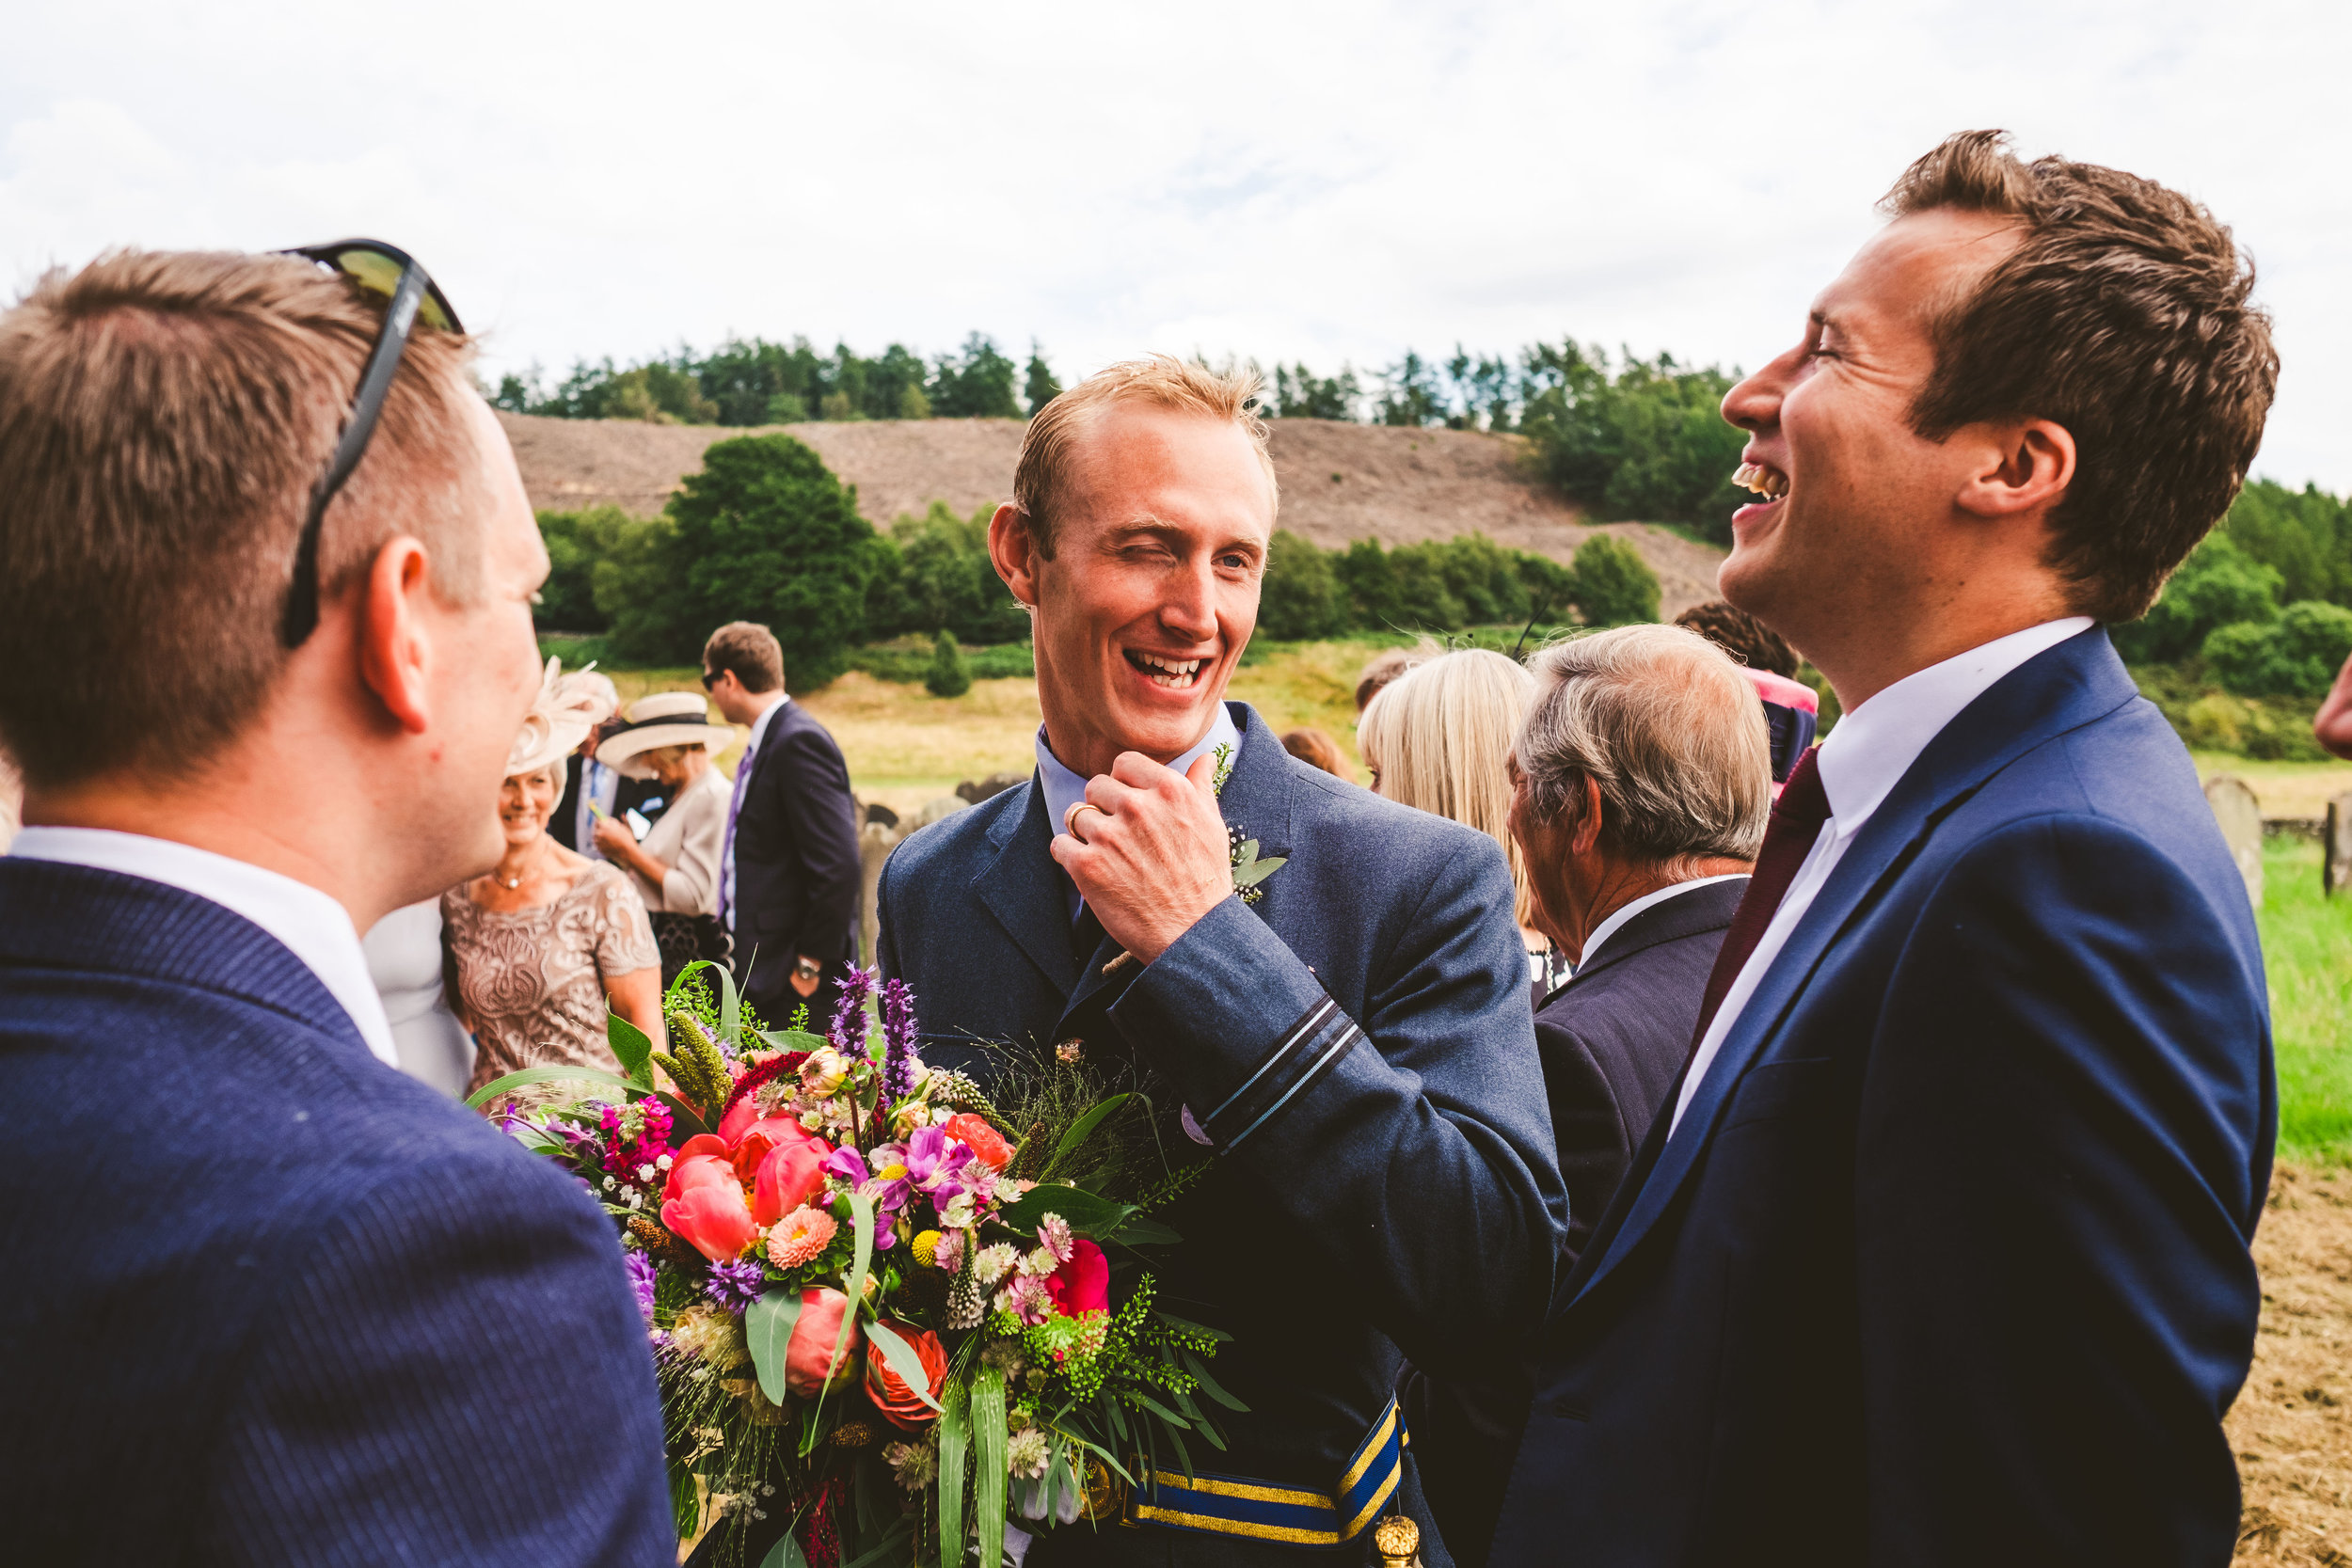 Ed mixing with wedding guest after his church wedding ceremony in Yorkshire